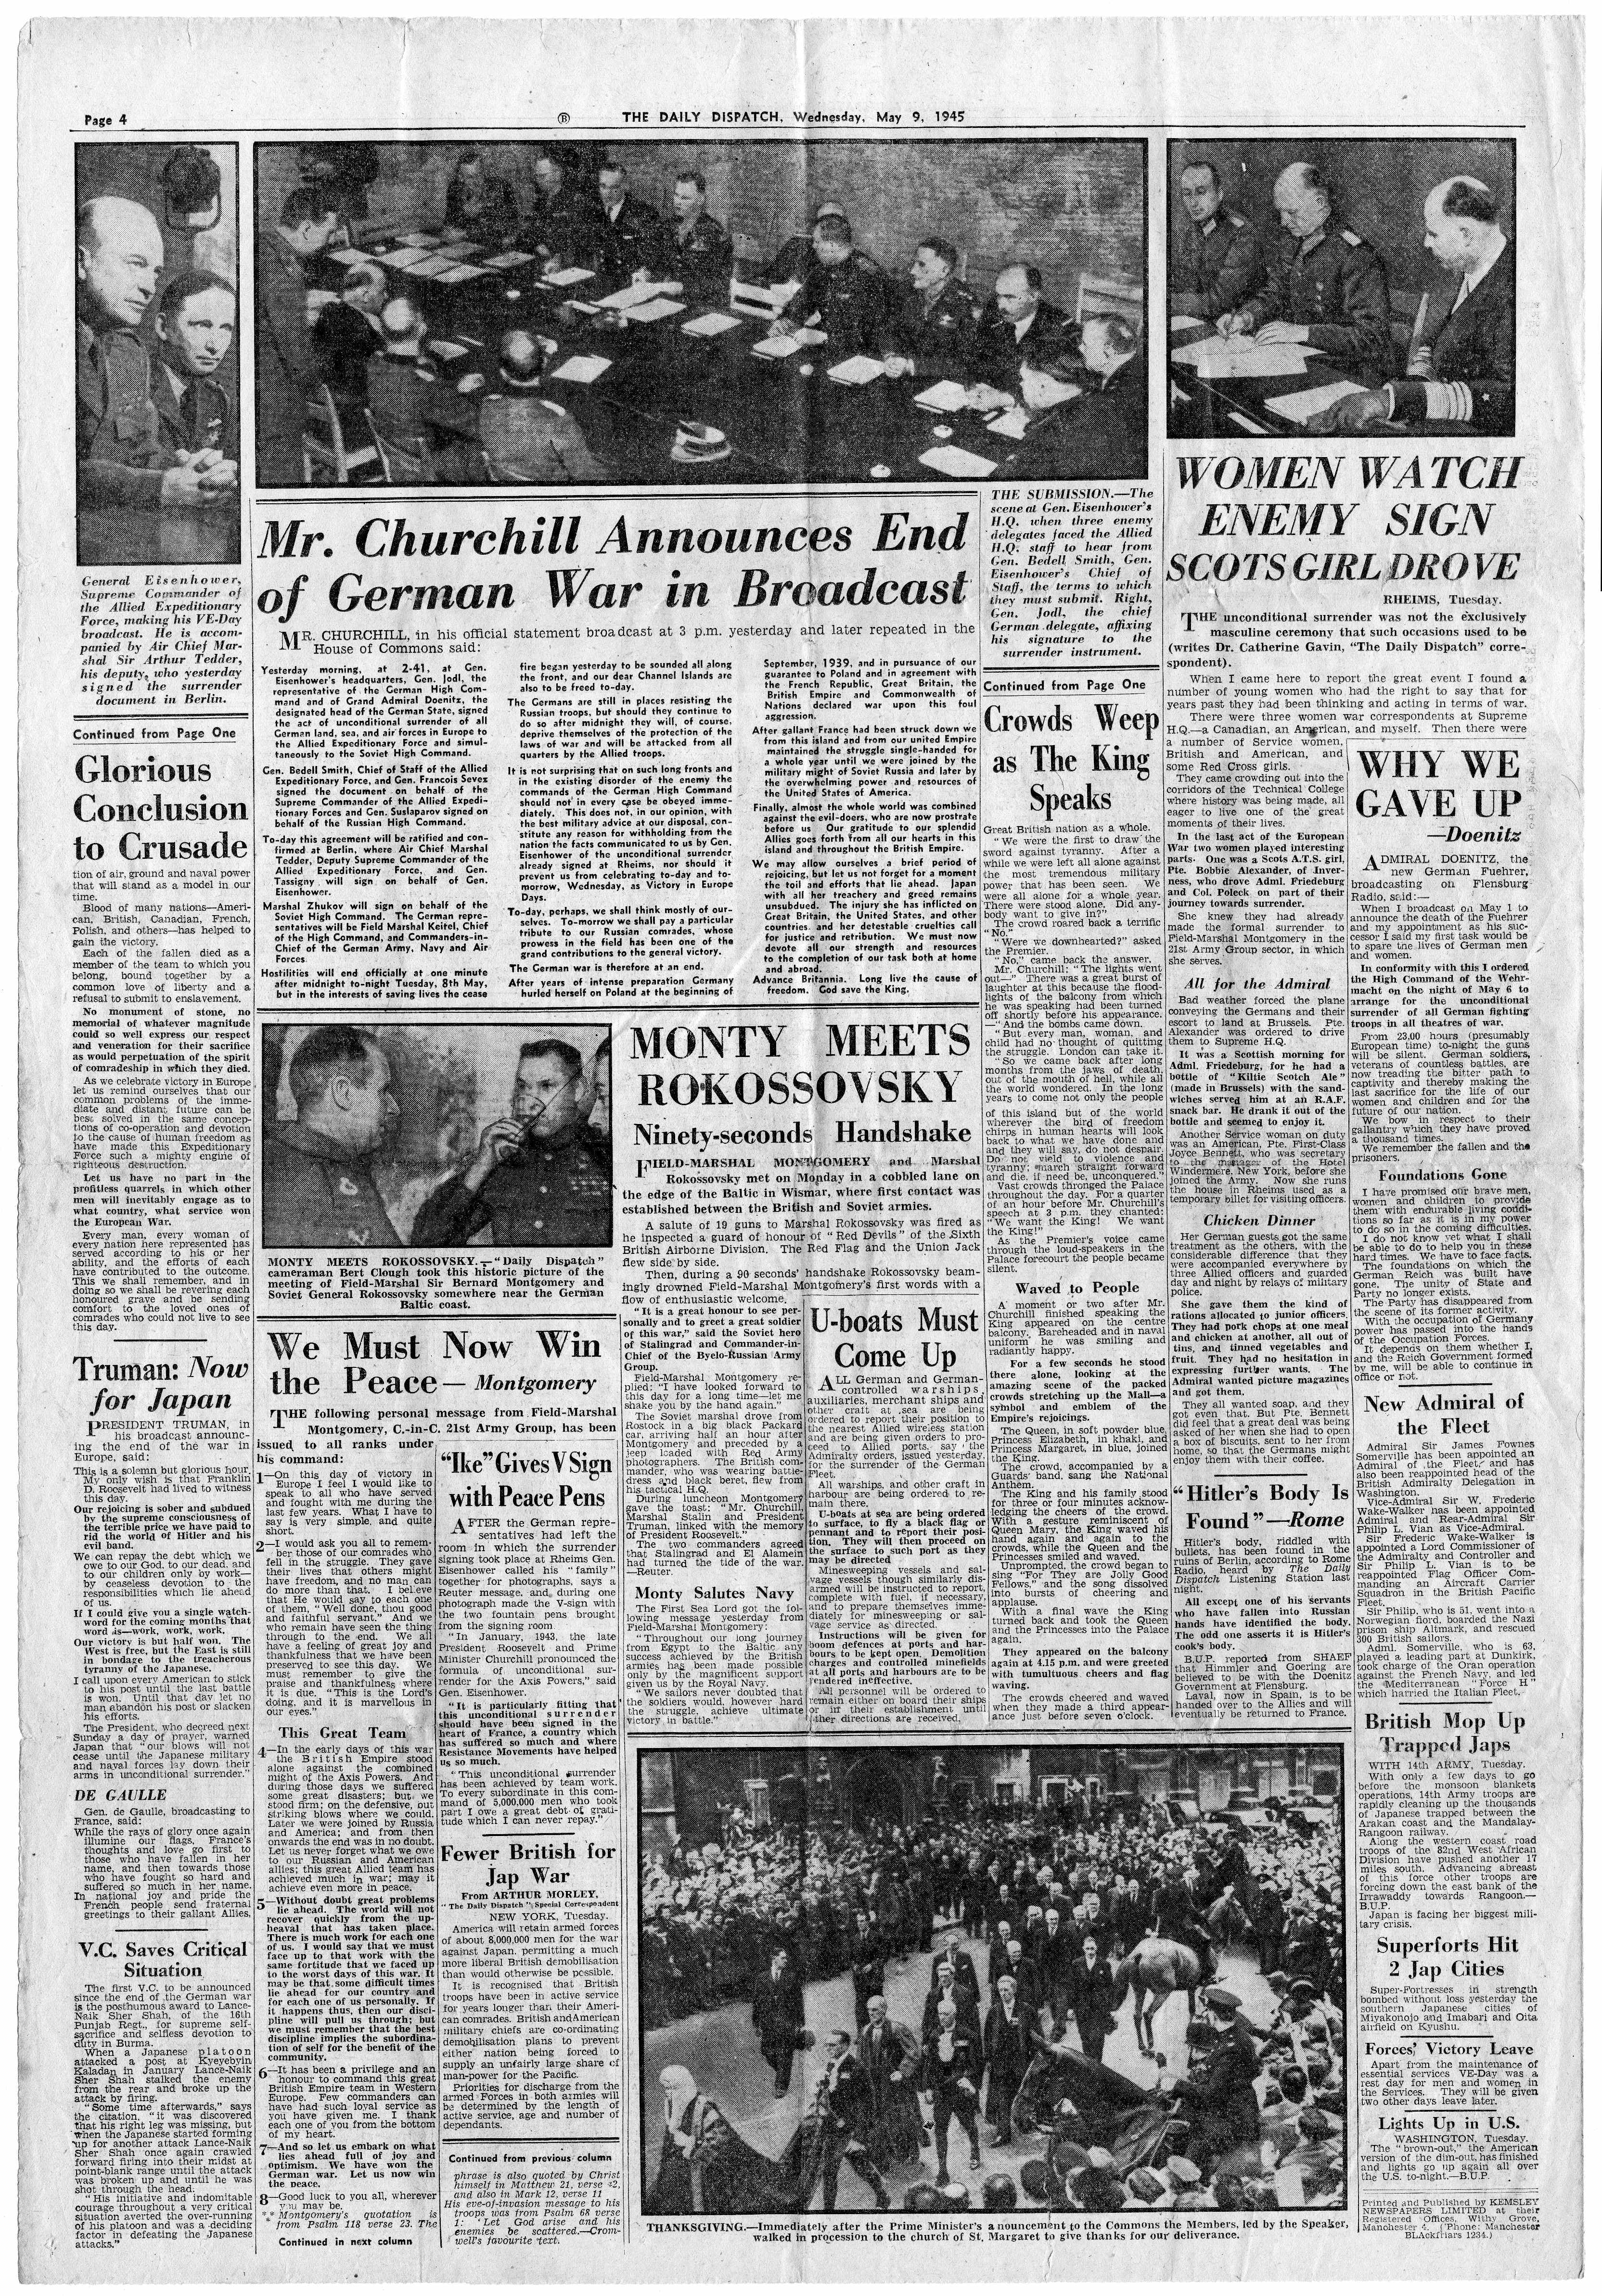 Wednesday, 9th May 1945 - The Daily Dispatch, page 4